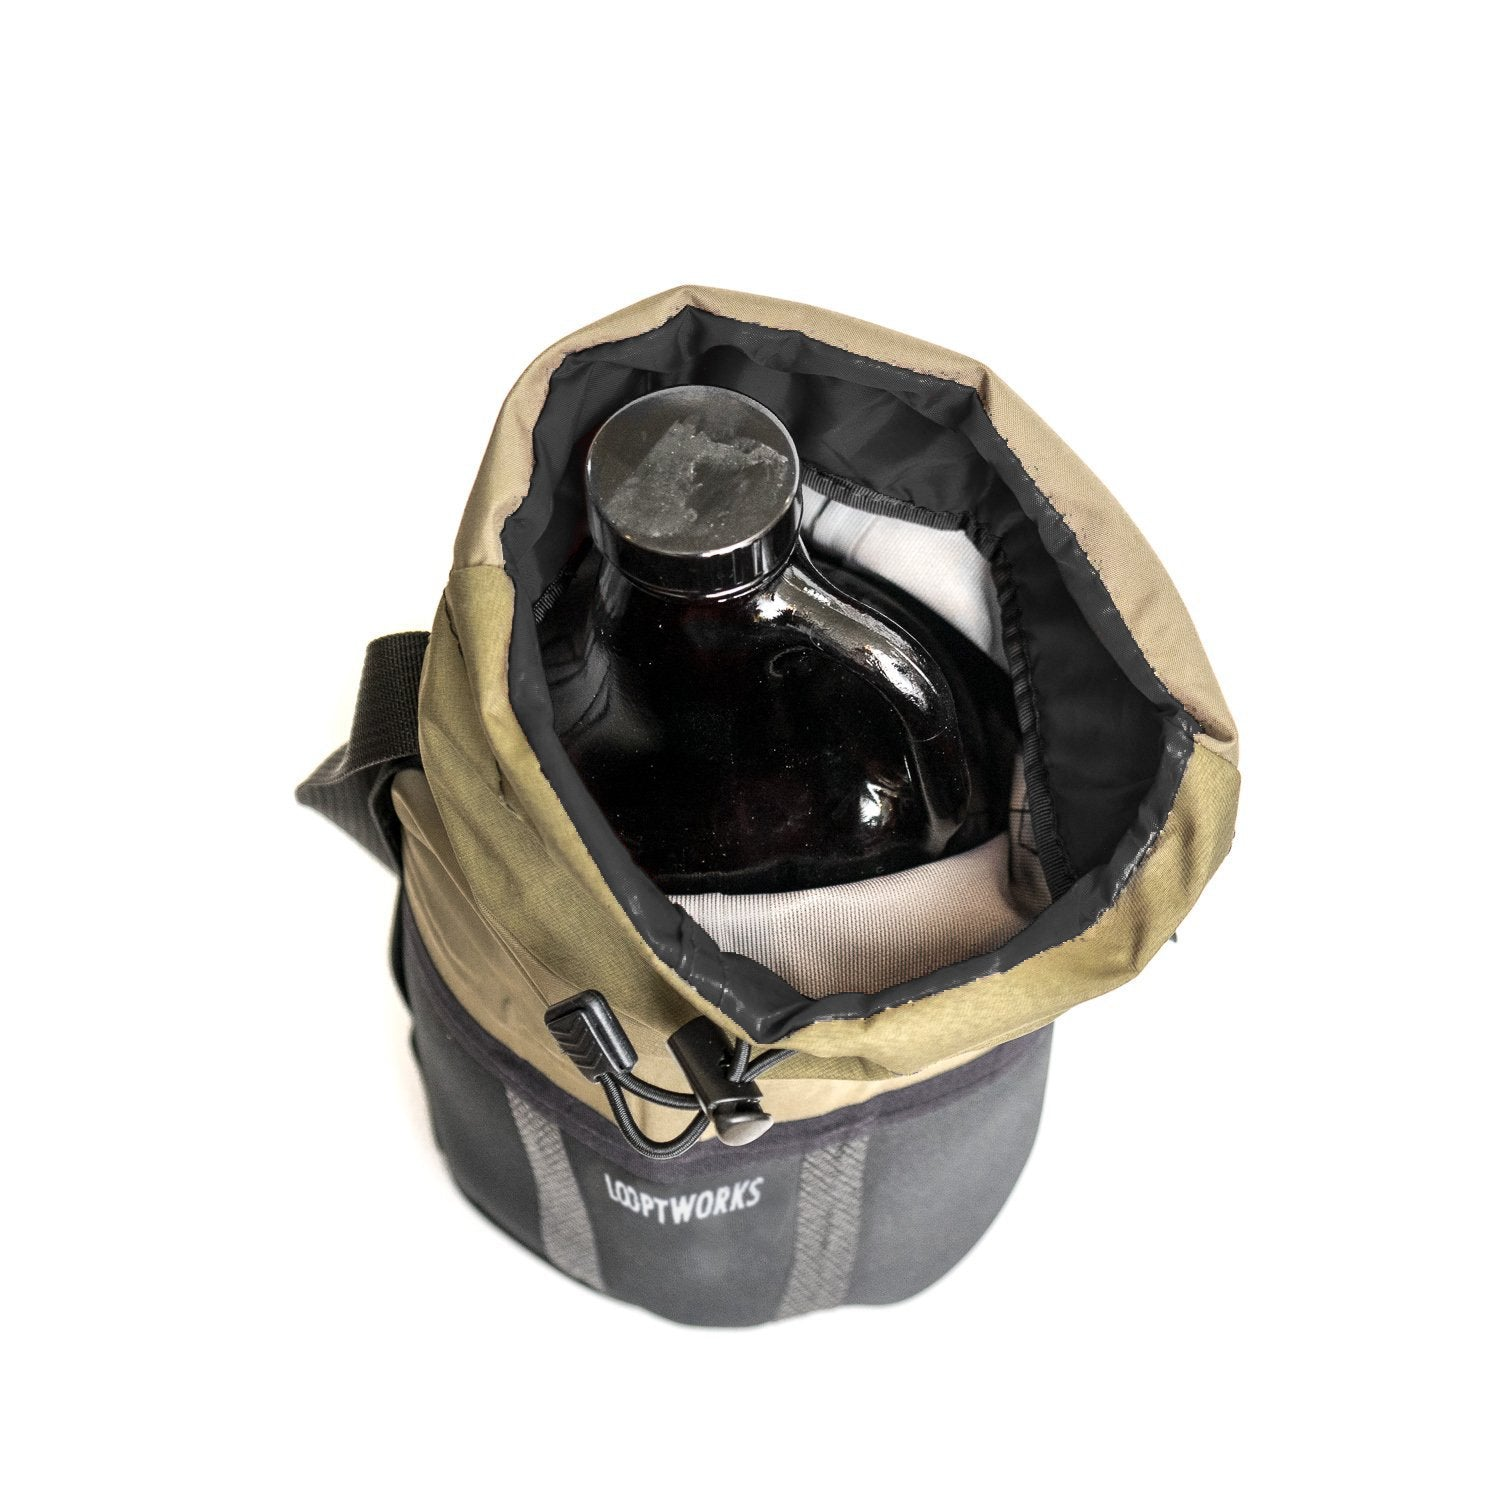 Top down view of our insulated growler carrier, made from upcycled Patagonia fishing wader booties.